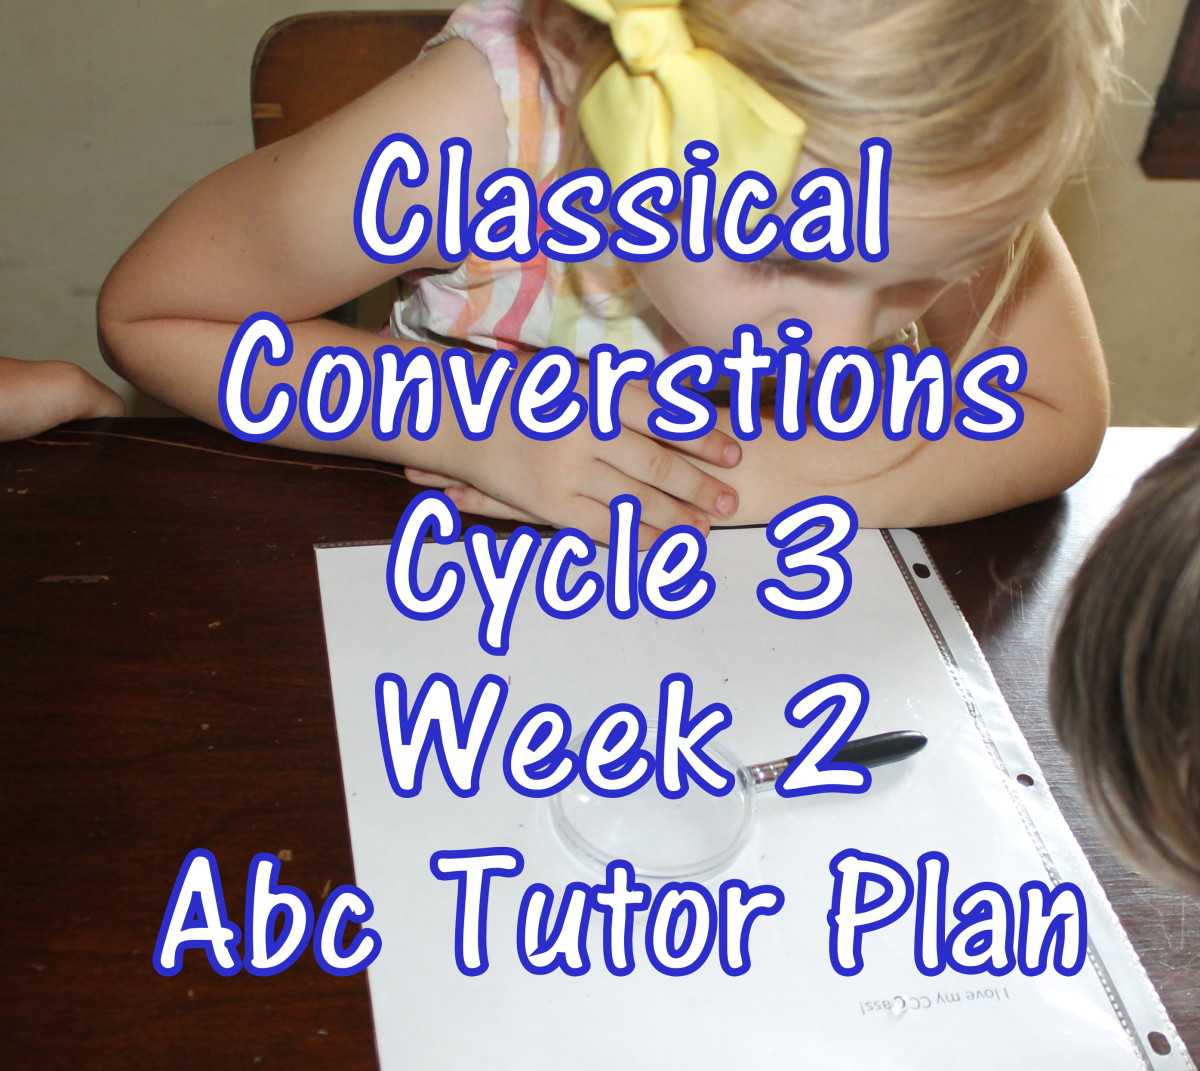 CC Cycle 3 Week 2 Lesson for Abecedarian Tutors